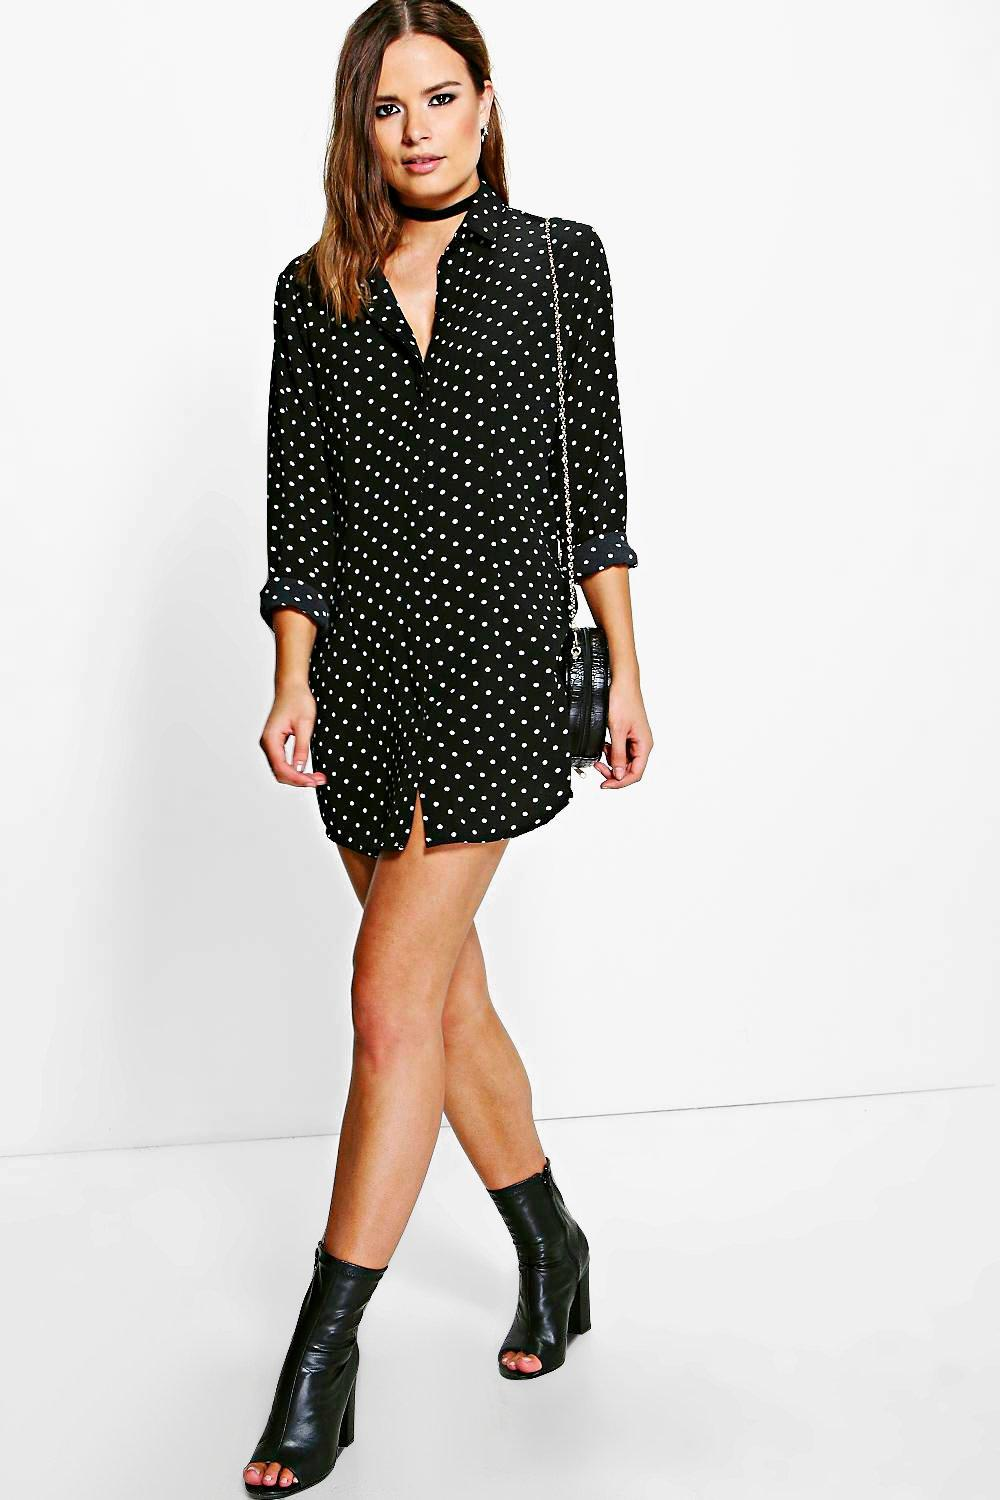 Find polka dot shirt dress at ShopStyle. Shop the latest collection of polka dot shirt dress from the most popular stores - all in one place.